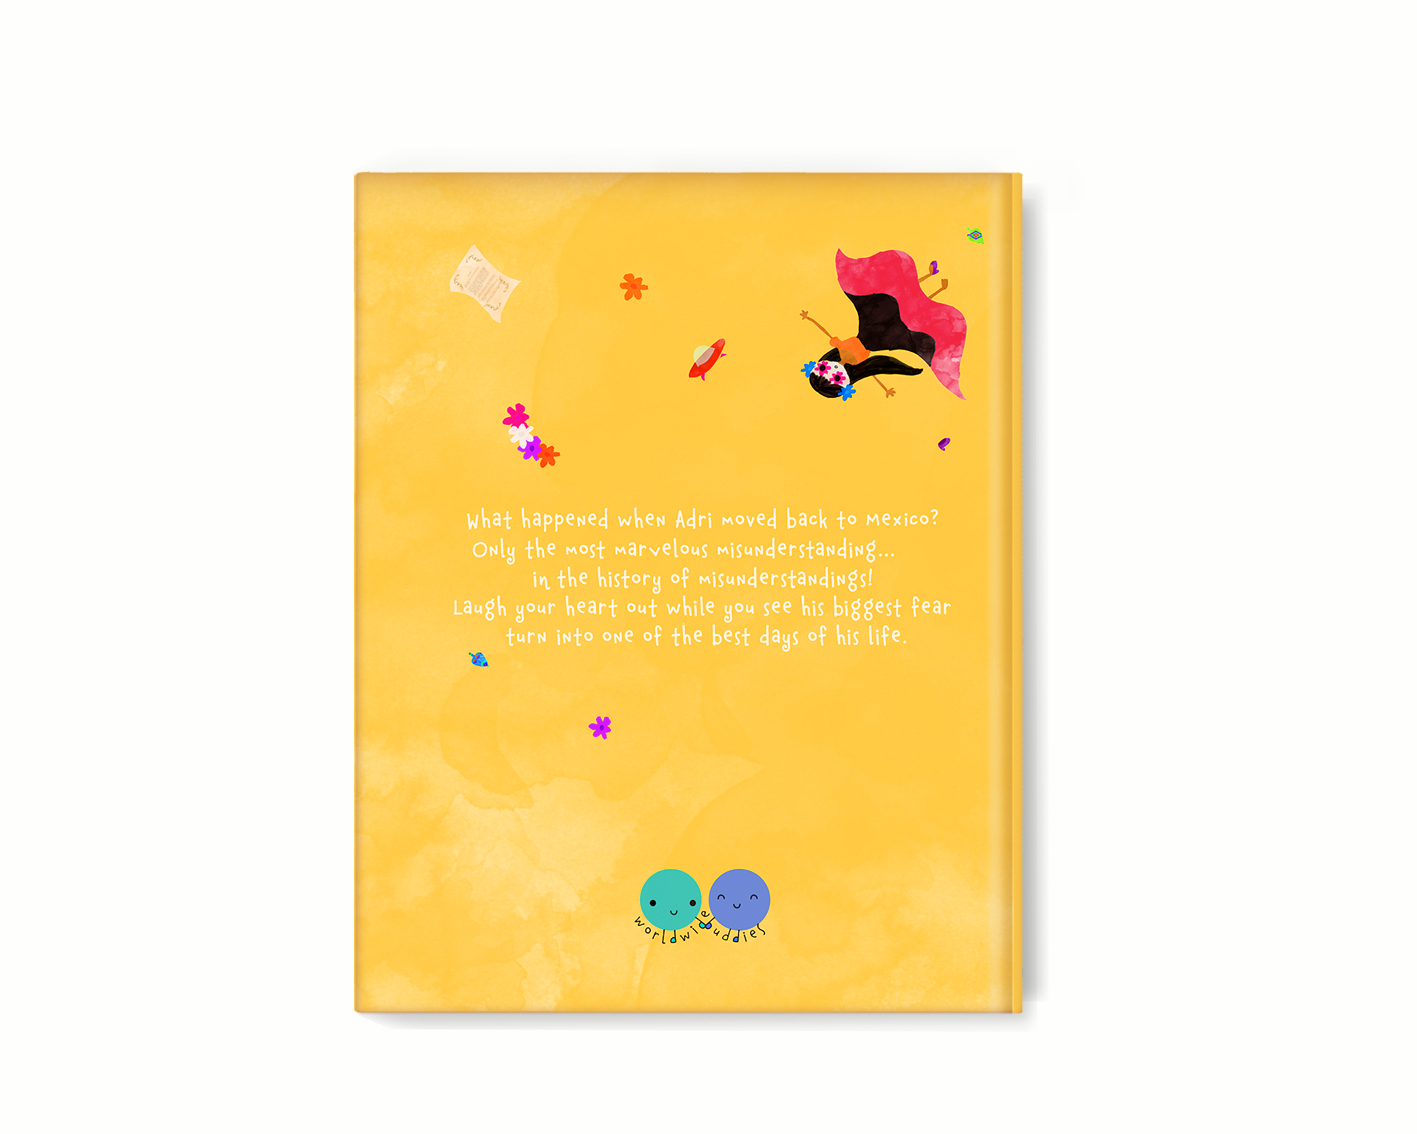 worldwide_buddies_picture_book_mexico_back.jpg